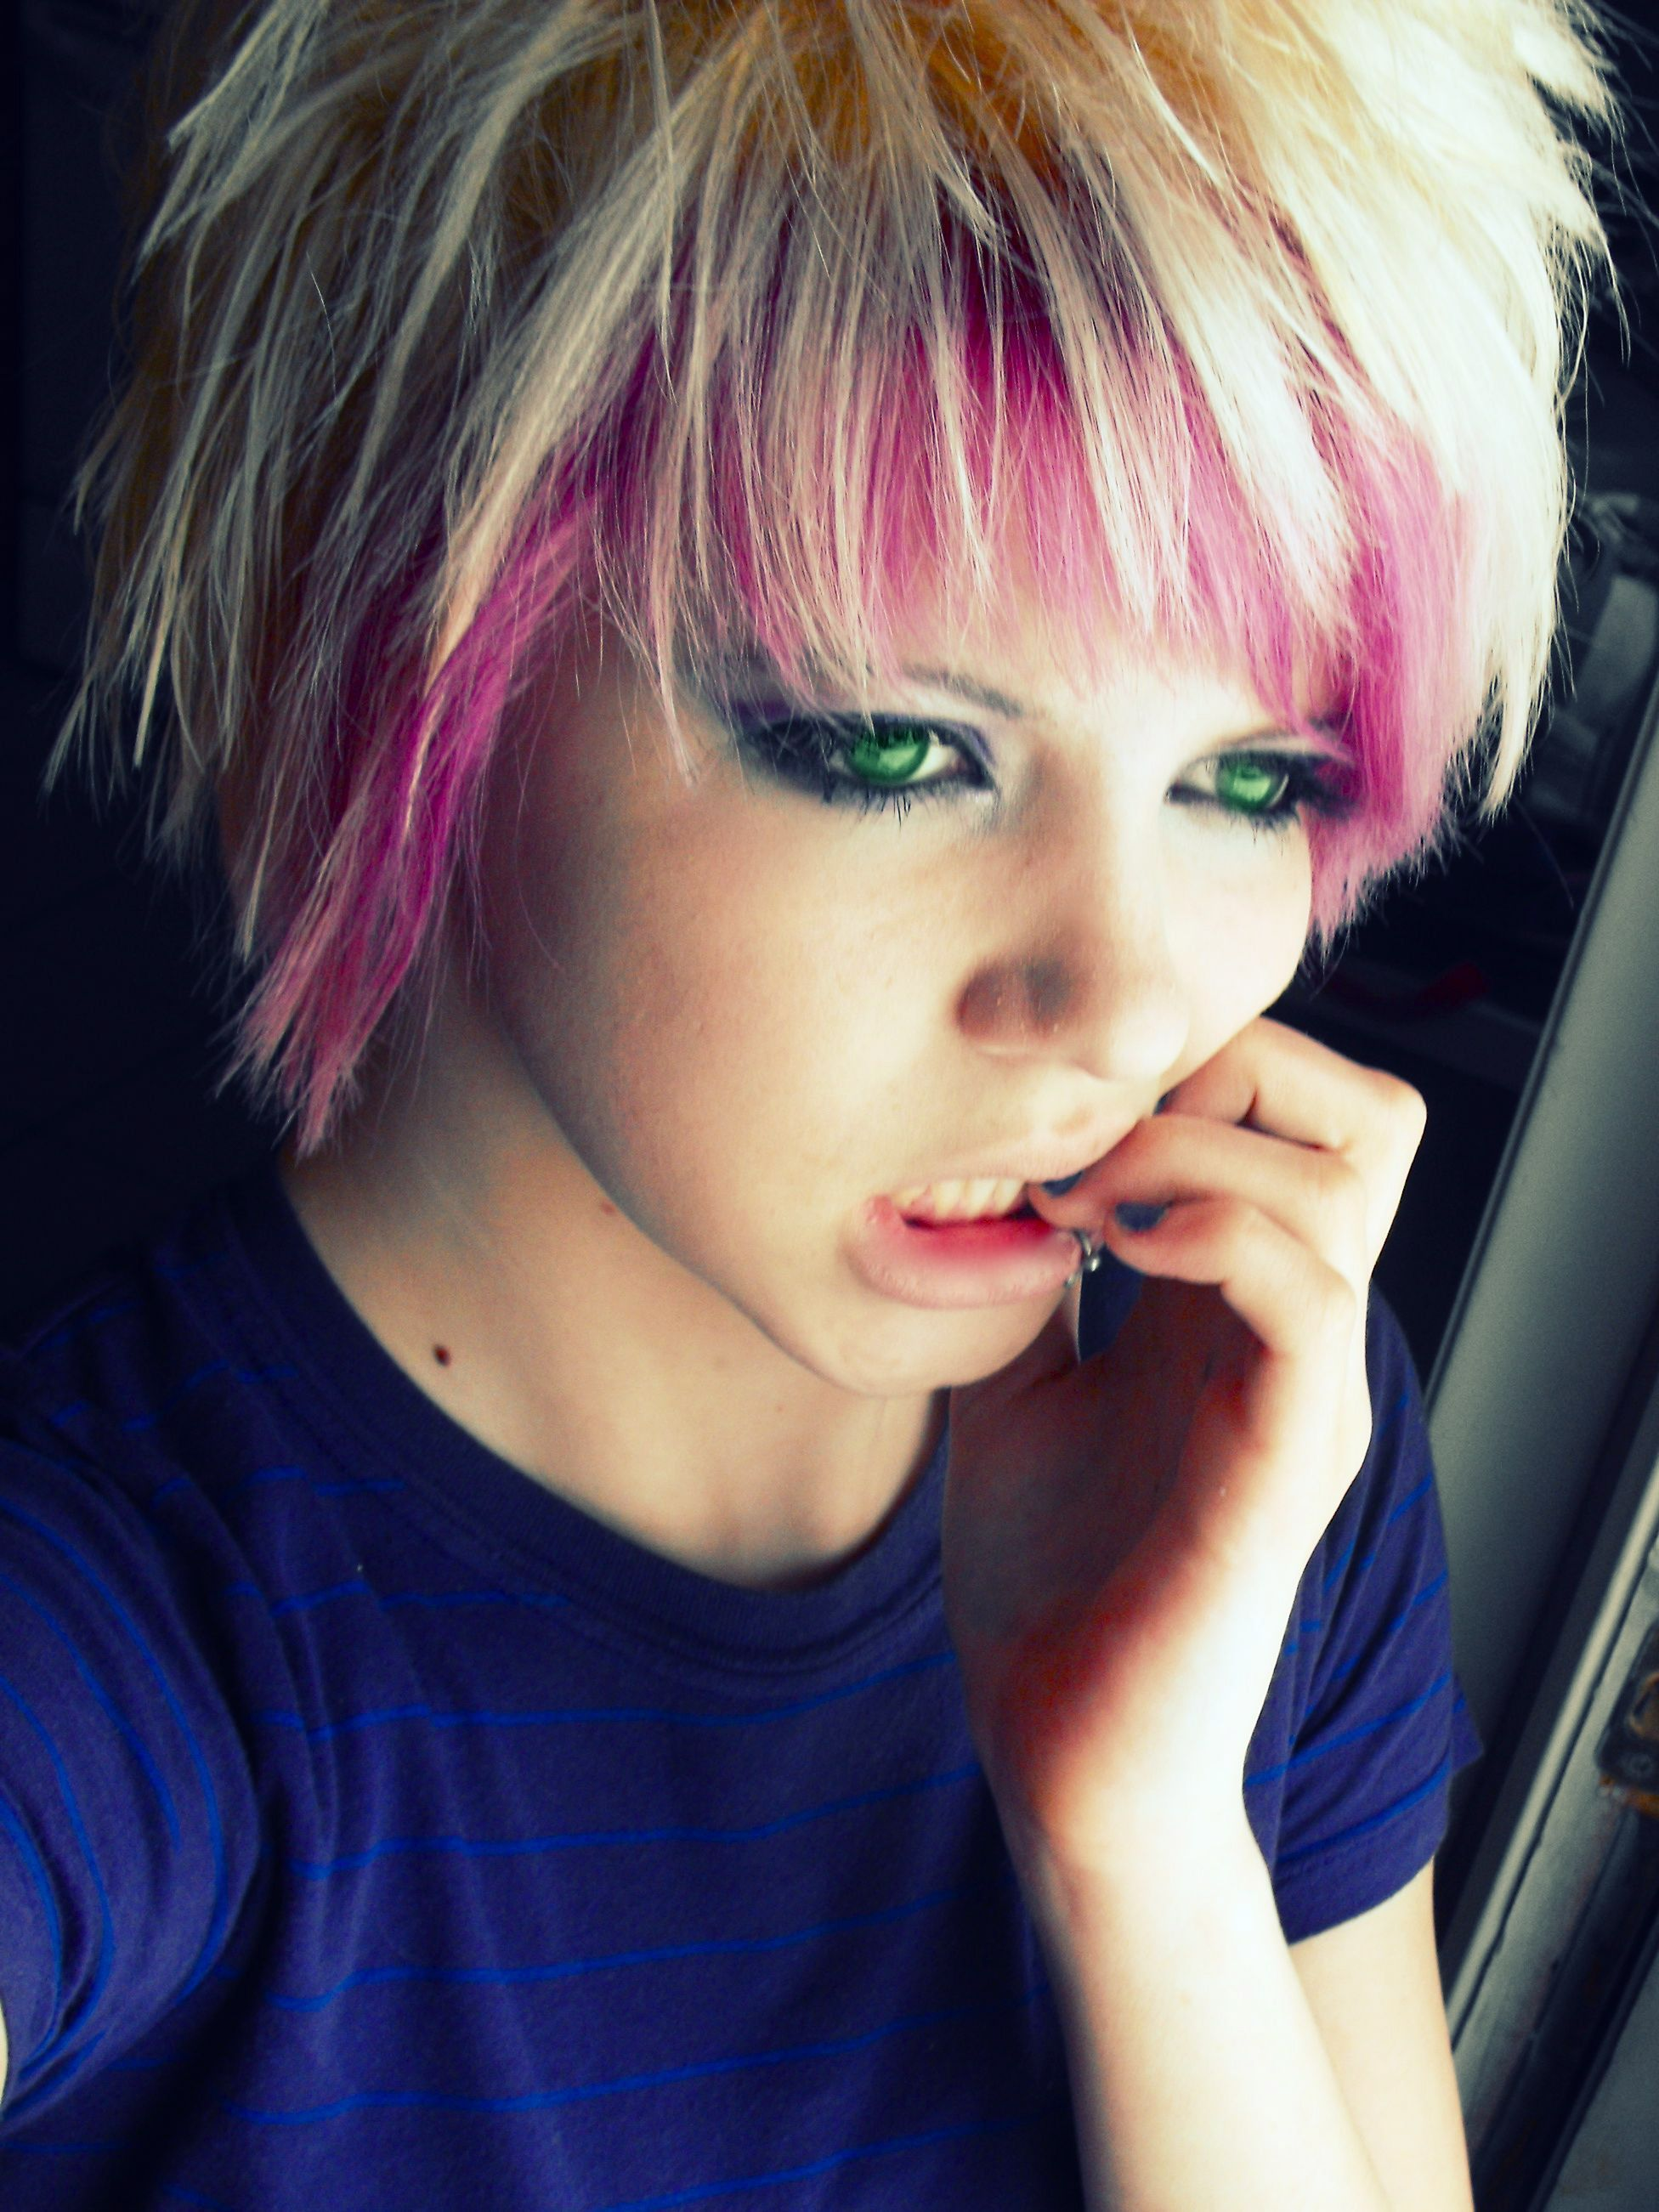 Scenegirlswithpinkhair Short Blonde Emo Hairshort Scene Hair